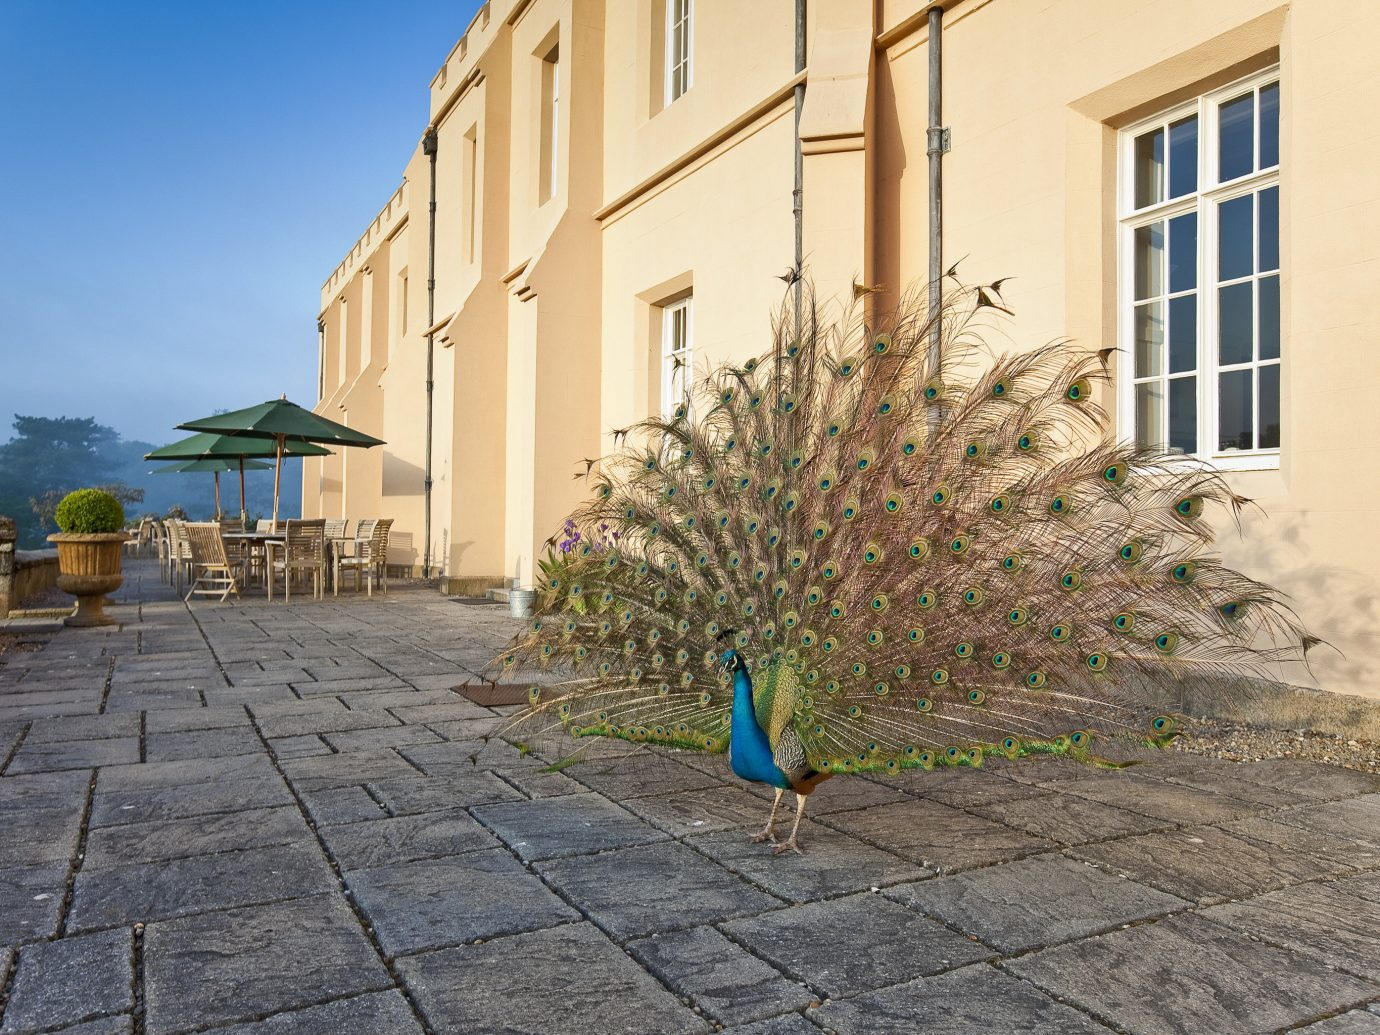 Hotels building ground outdoor property walkway wall estate house Courtyard residential area home facade way sidewalk apartment stone